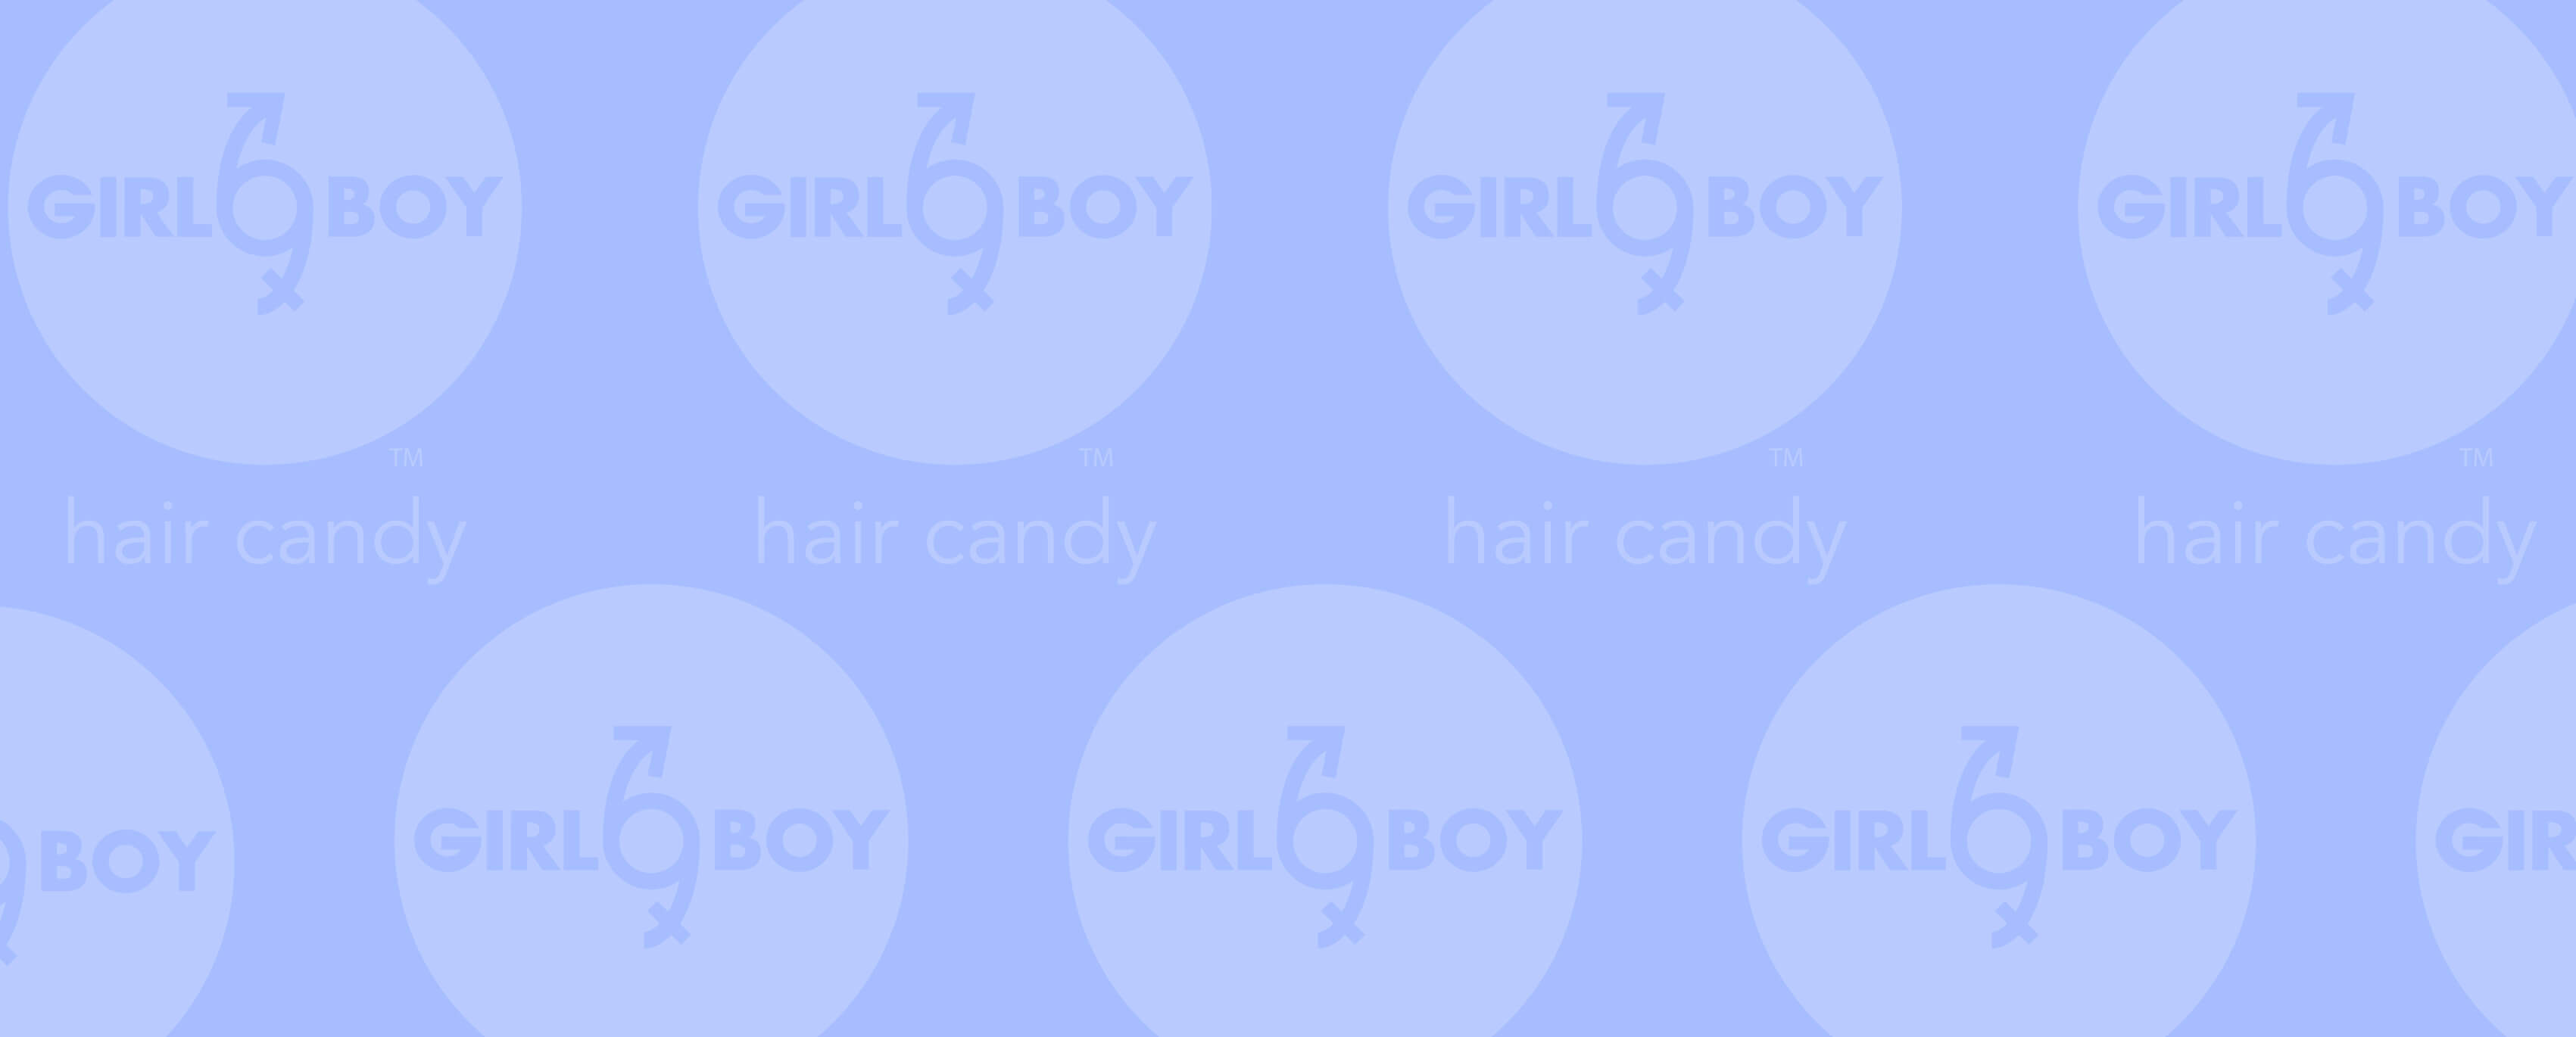 GirlBoy Stockists